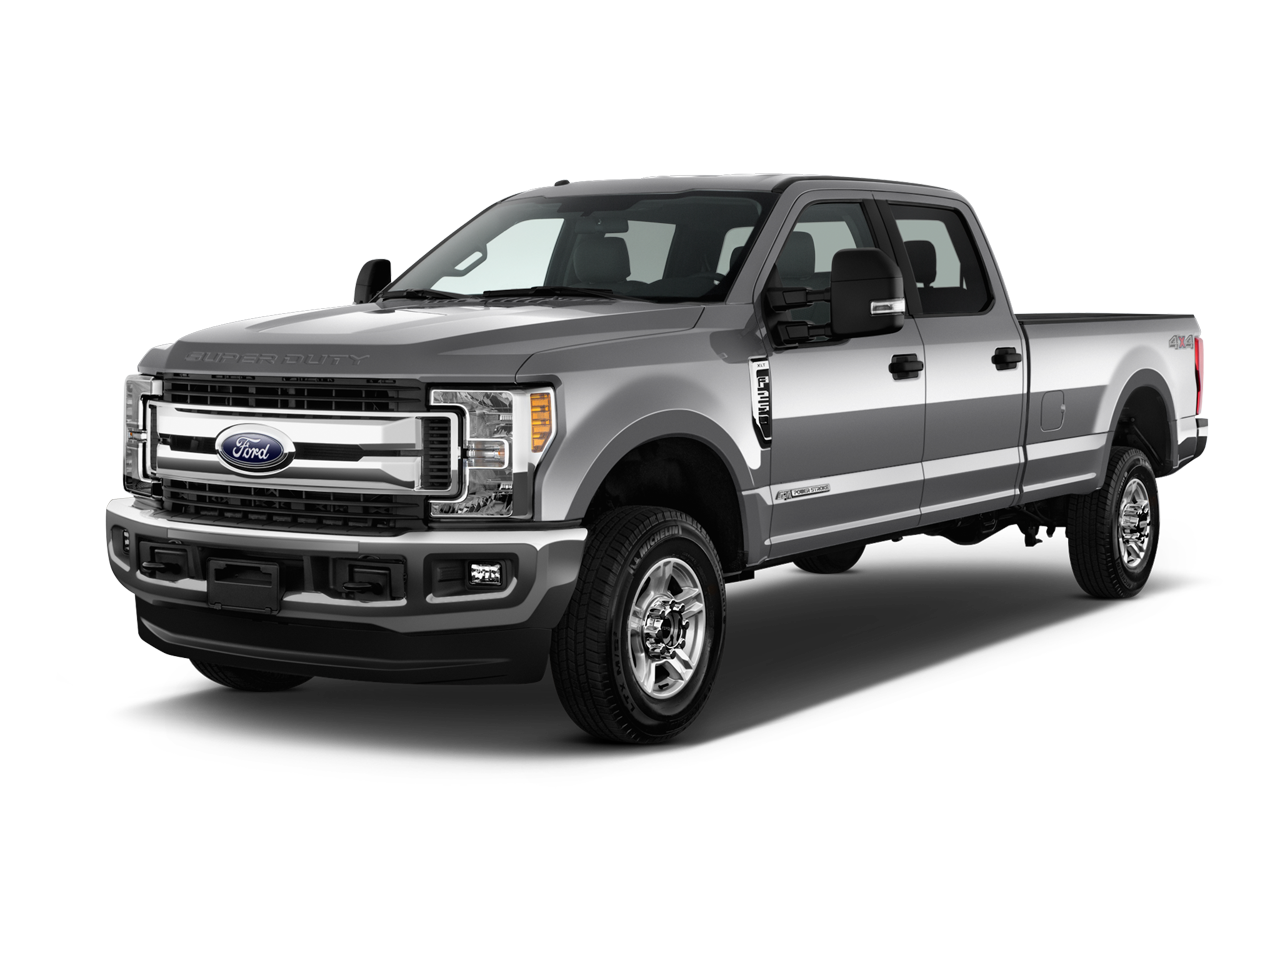 new 2017 ford f 250 super duty xl near georgetown de pittsville ford. Black Bedroom Furniture Sets. Home Design Ideas